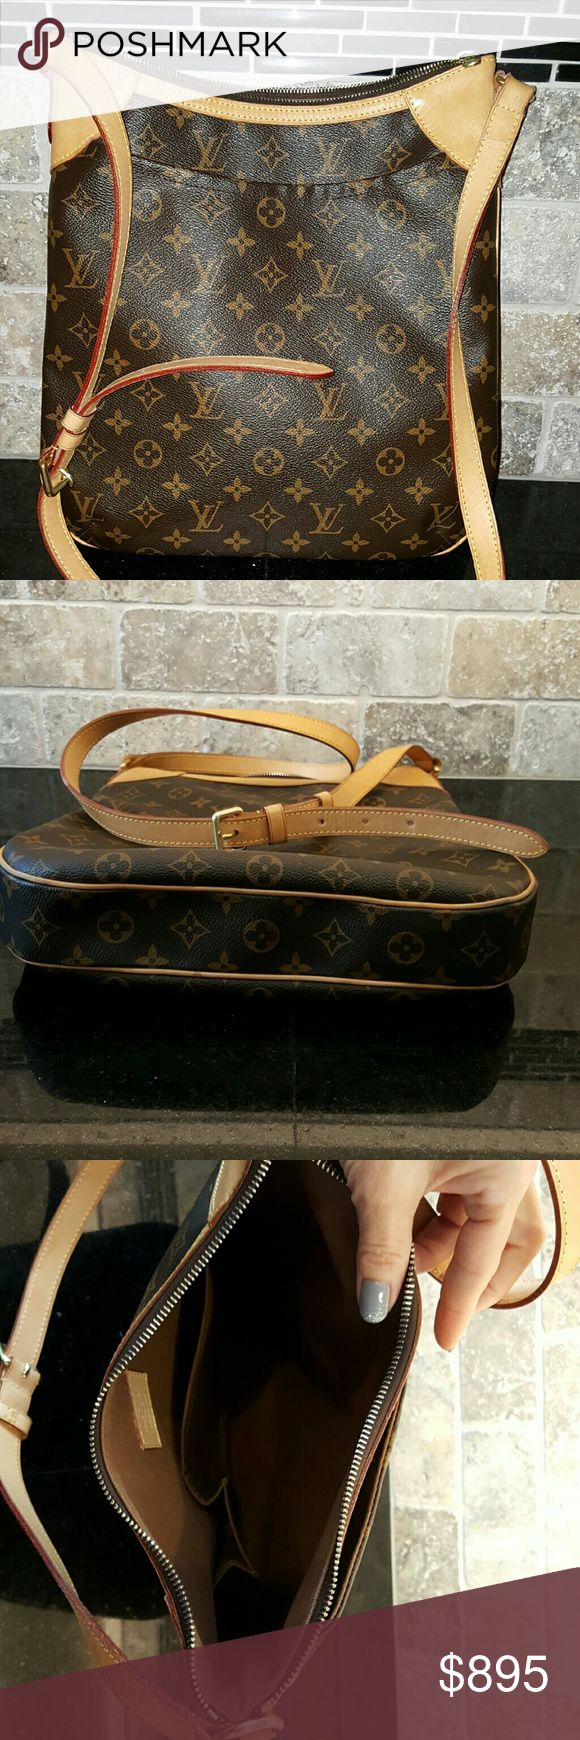 """Louis Vuitton Odeon MM  *Discontinued* Gently used monogram Louis Vuitton crossbody bag. Honeyed patina in good condition with some light water spotting, but nothing obvious. Clean odor-free canvas liner with 2 interior patch pockets.  Dust bag included. 13""""L x 12""""H x 2""""W.   No trades or insulting offers, please. Louis Vuitton Bags Crossbody Bags"""